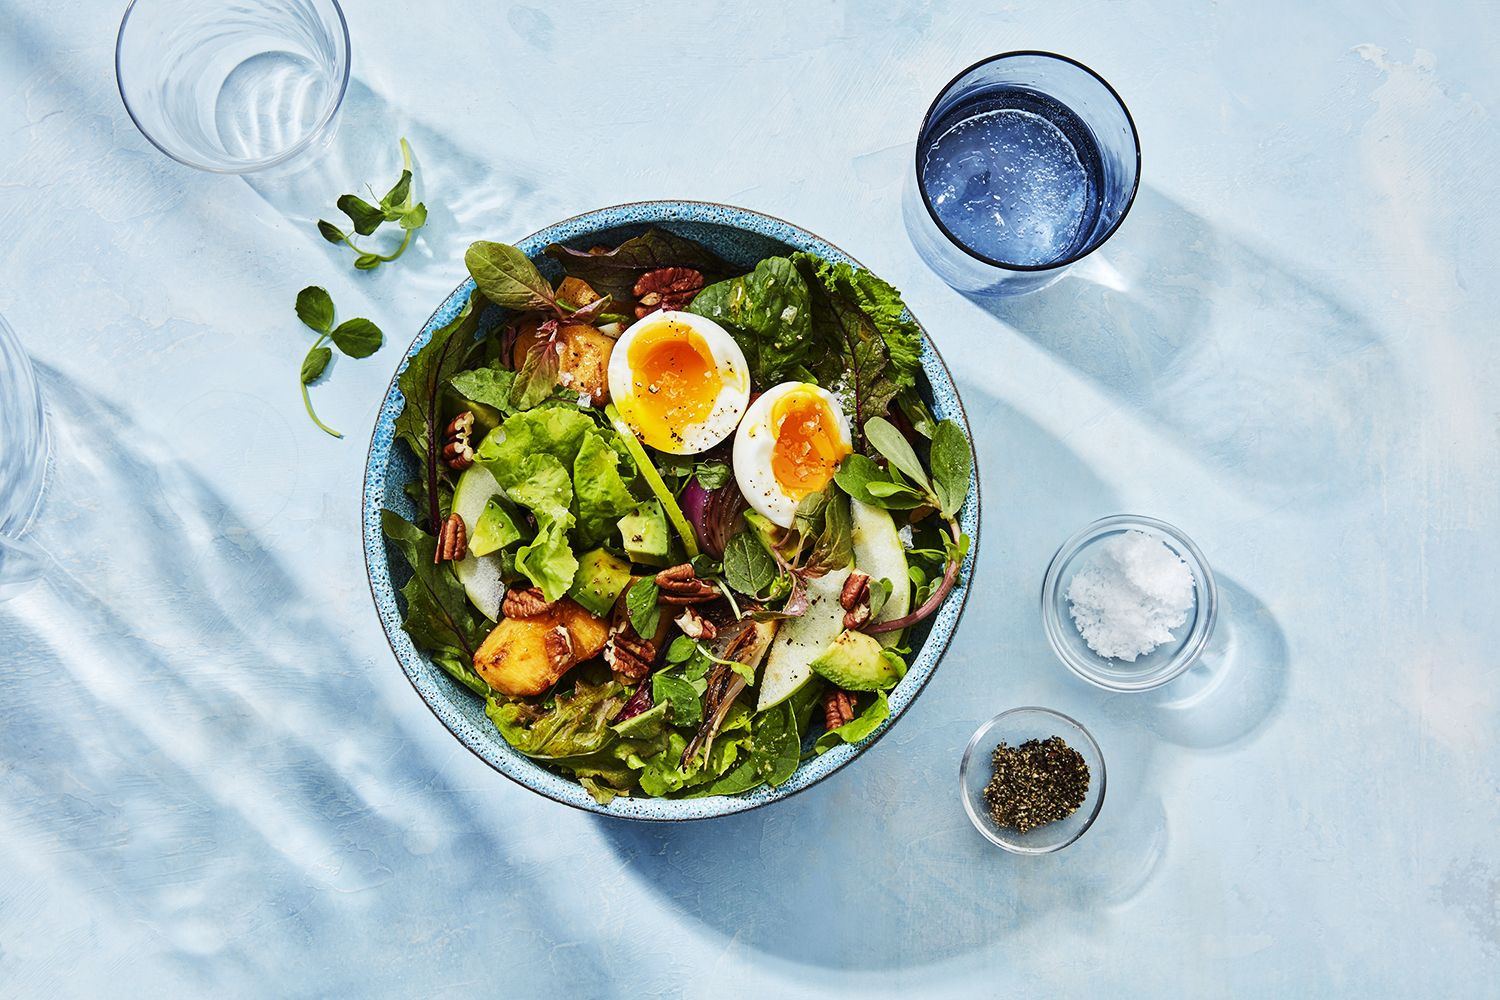 16 Breakfast Salads To Help You Power Through The Day